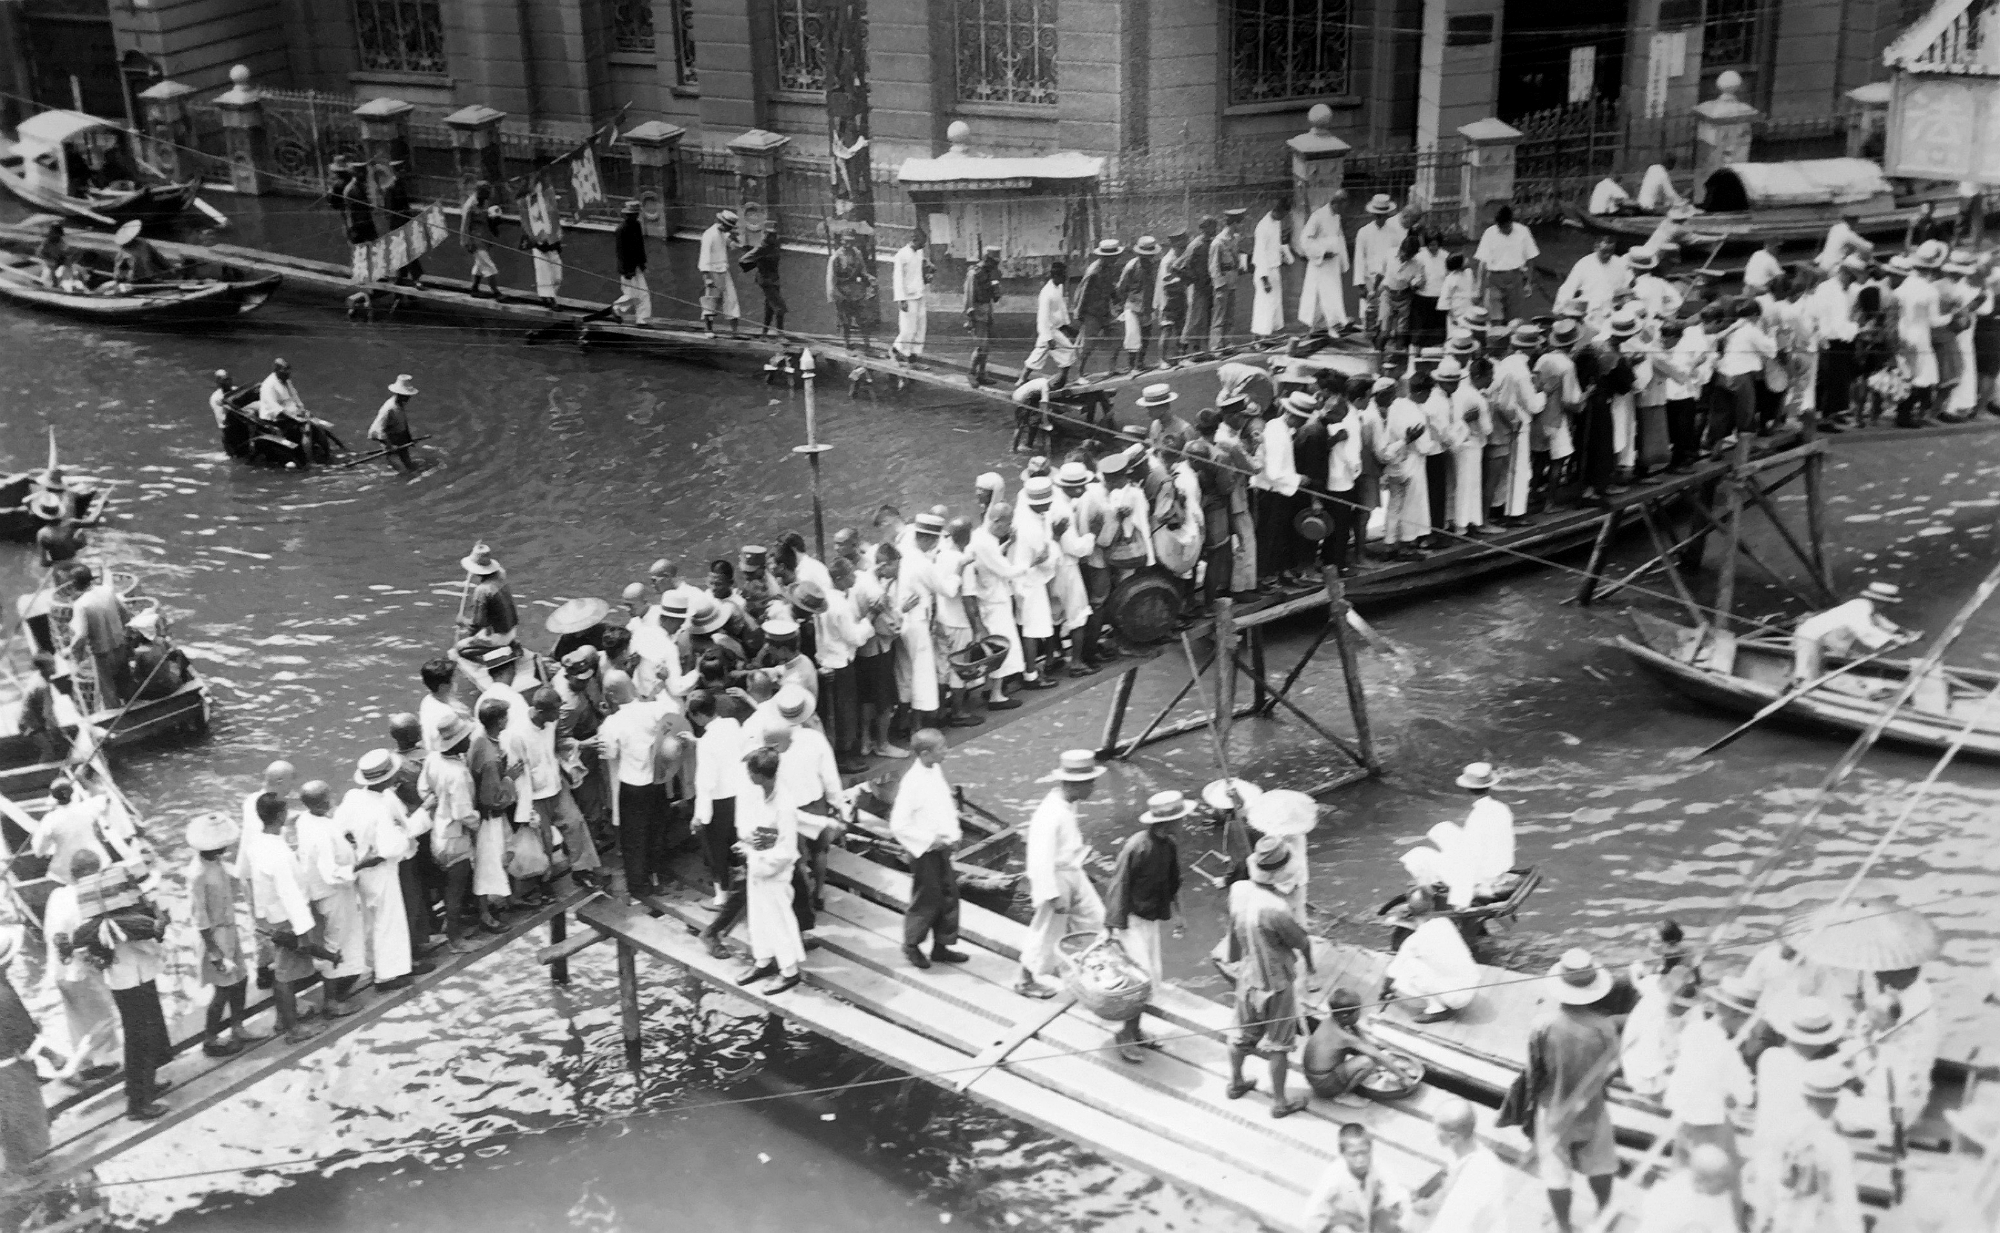 Picturing disaster: The 1931 Wuhan flood   China Dialogue